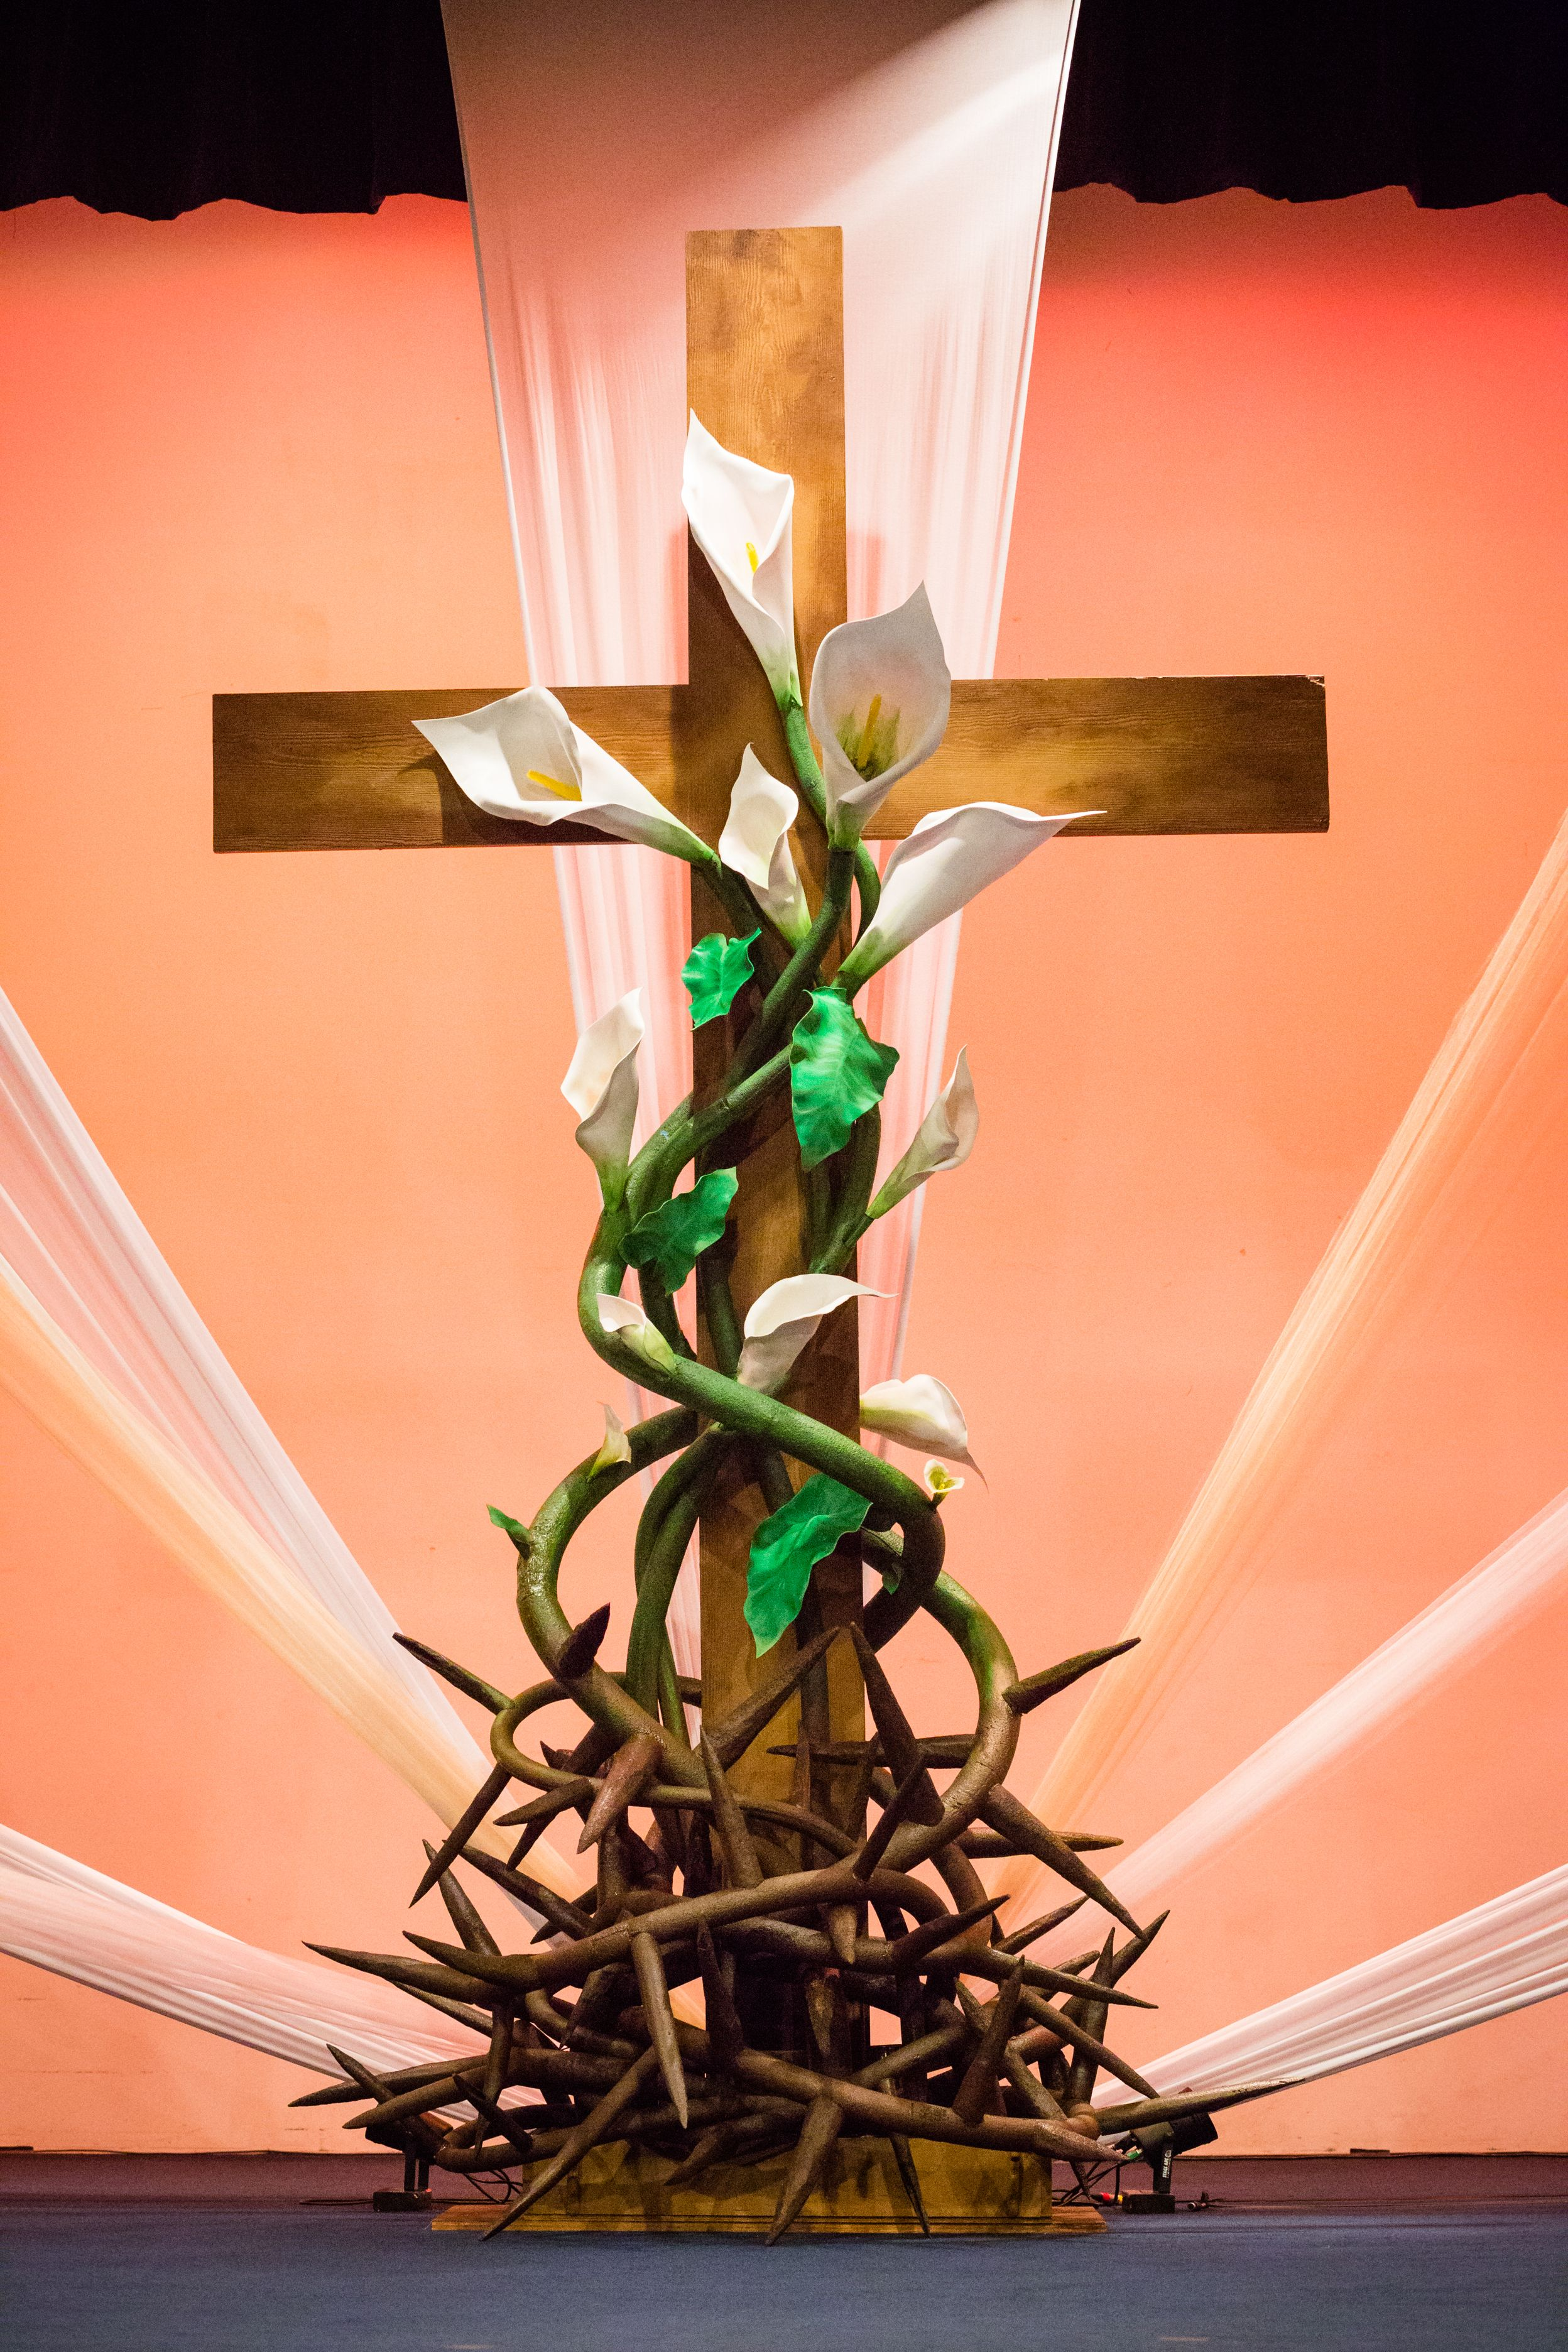 Religious easter yard decorations - Lynn Colvin From Christian Fellowship Church In Harlingen Texas Brings Us This Super Clean Look For Easter This Easter Stage Design Was Inspired By An